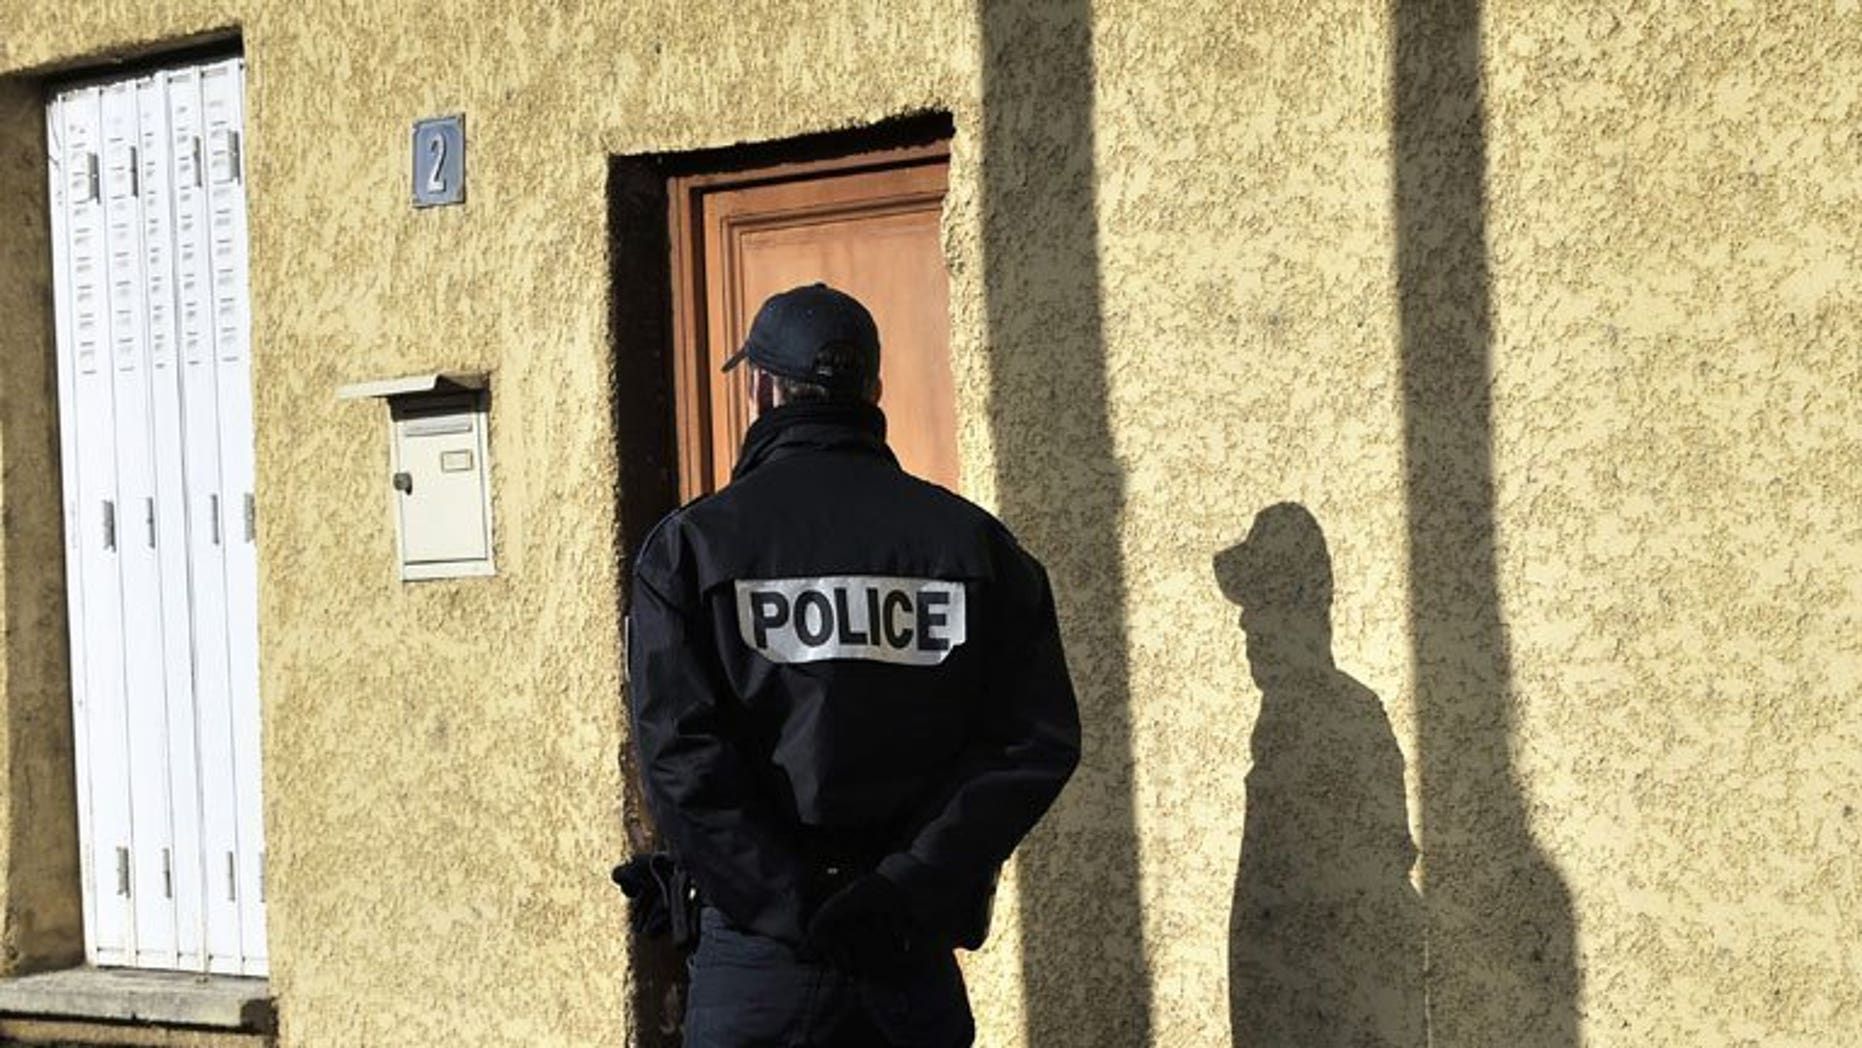 A French policeman patrols the streets of Decines-Charpieu, on April 11, 2012. Robbers posing as policemen made off with 200,000 euros ($261,000) belonging to a senior official from the Saudi youth and sports ministry just after he landed in Paris, police said Monday.